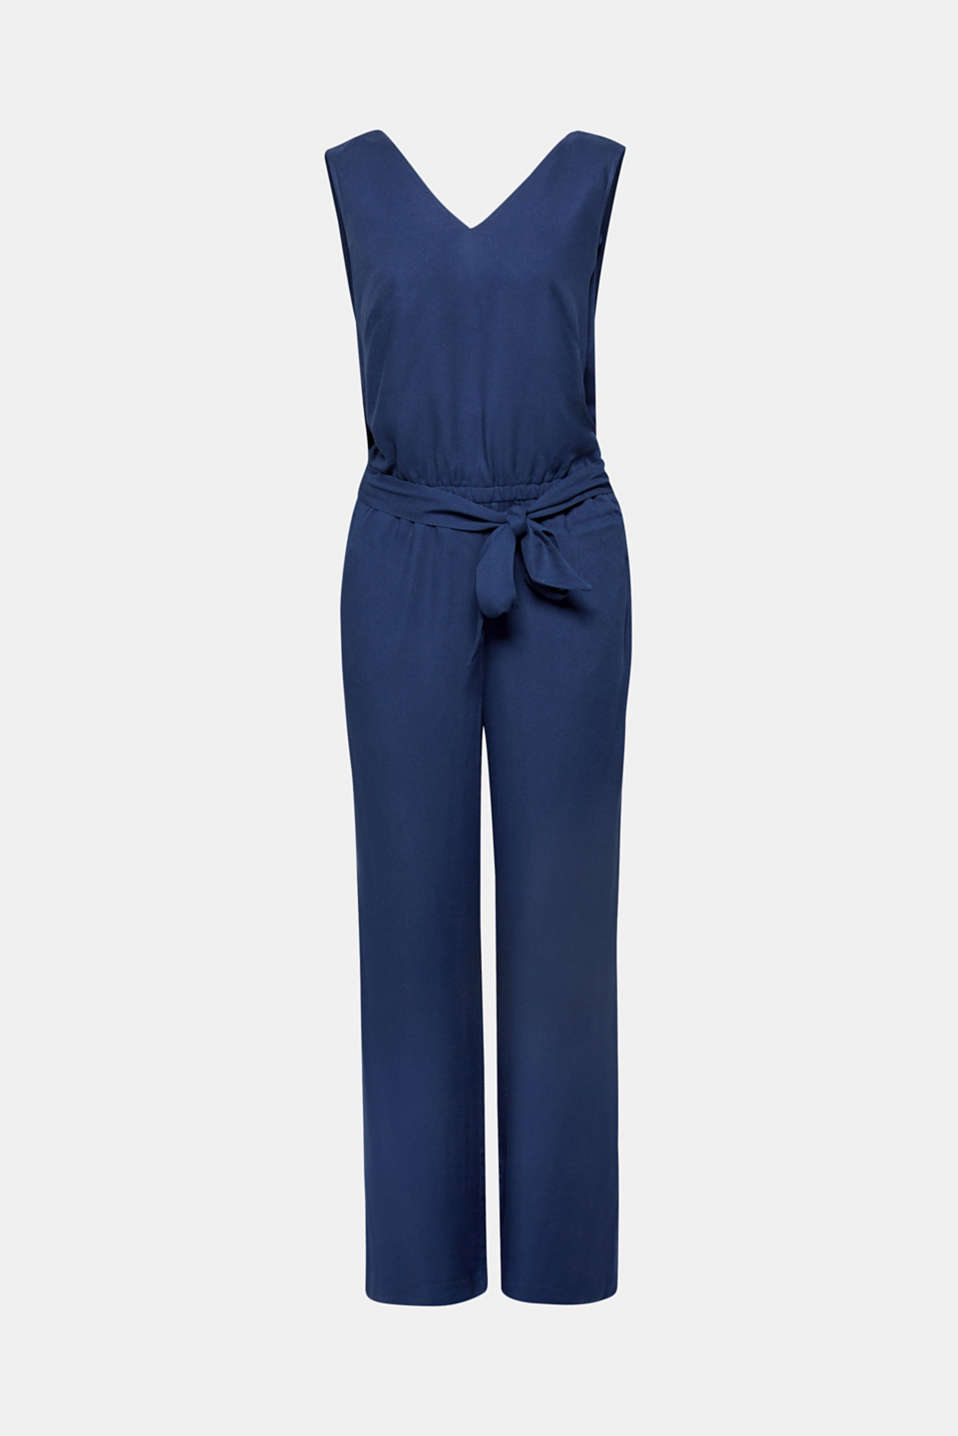 Jumpsuit with a wide leg and rear cut-out, NAVY, detail image number 6